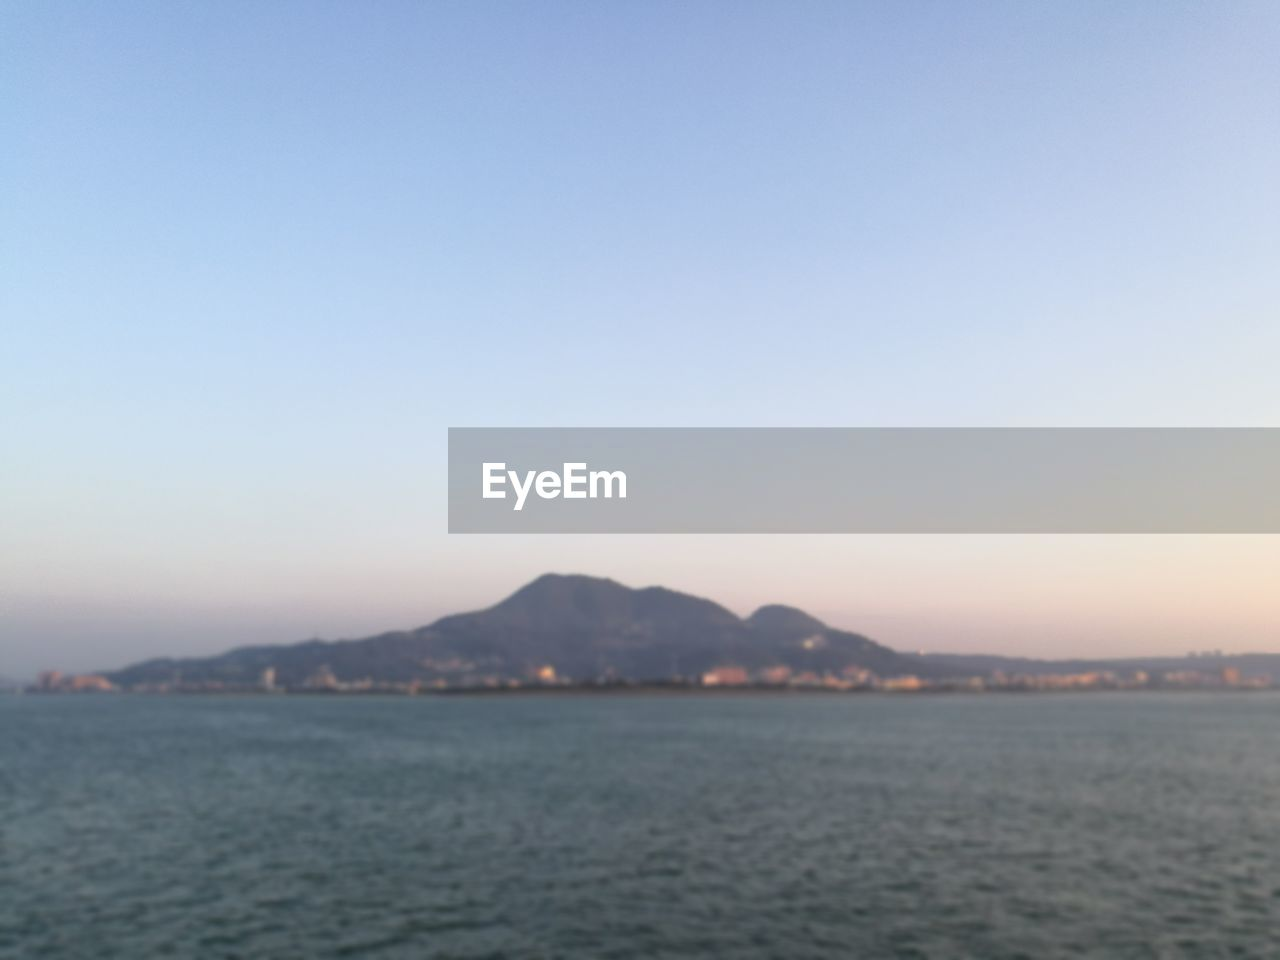 copy space, nature, clear sky, tranquility, beauty in nature, water, mountain, waterfront, no people, tranquil scene, outdoors, sunset, scenics, sea, view into land, sky, day